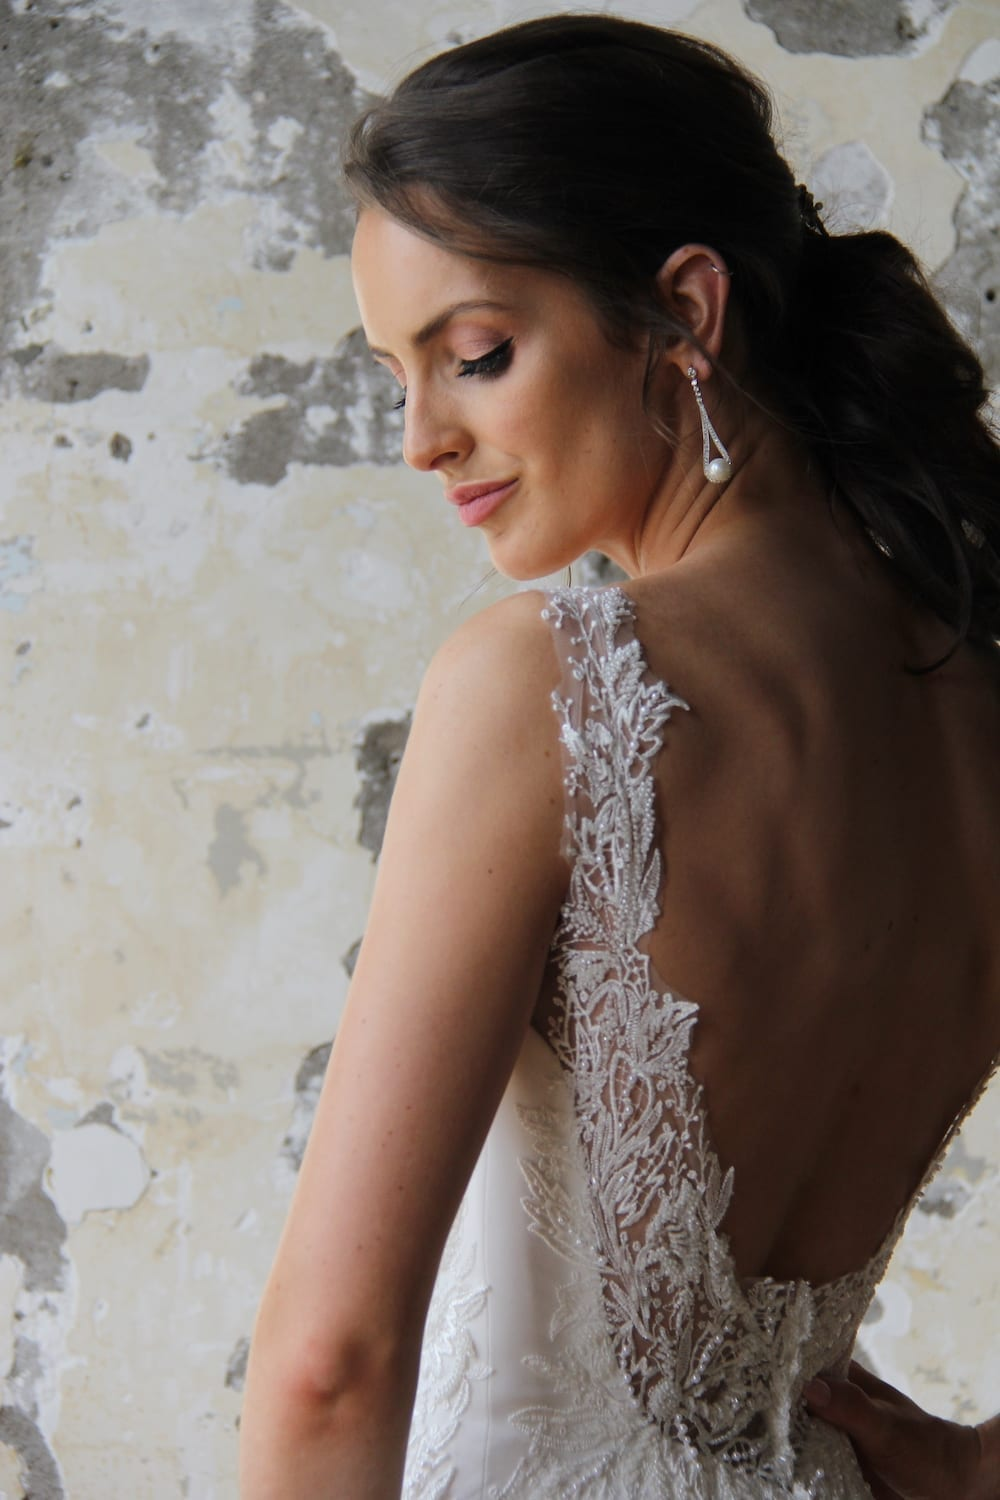 Female model wearing Vinka Design Modern Muse Wedding Dress. In chic warehouse the back detail of a gown with delicate beaded leaf lace, sheer back straps and bridal crepe skirt with train.